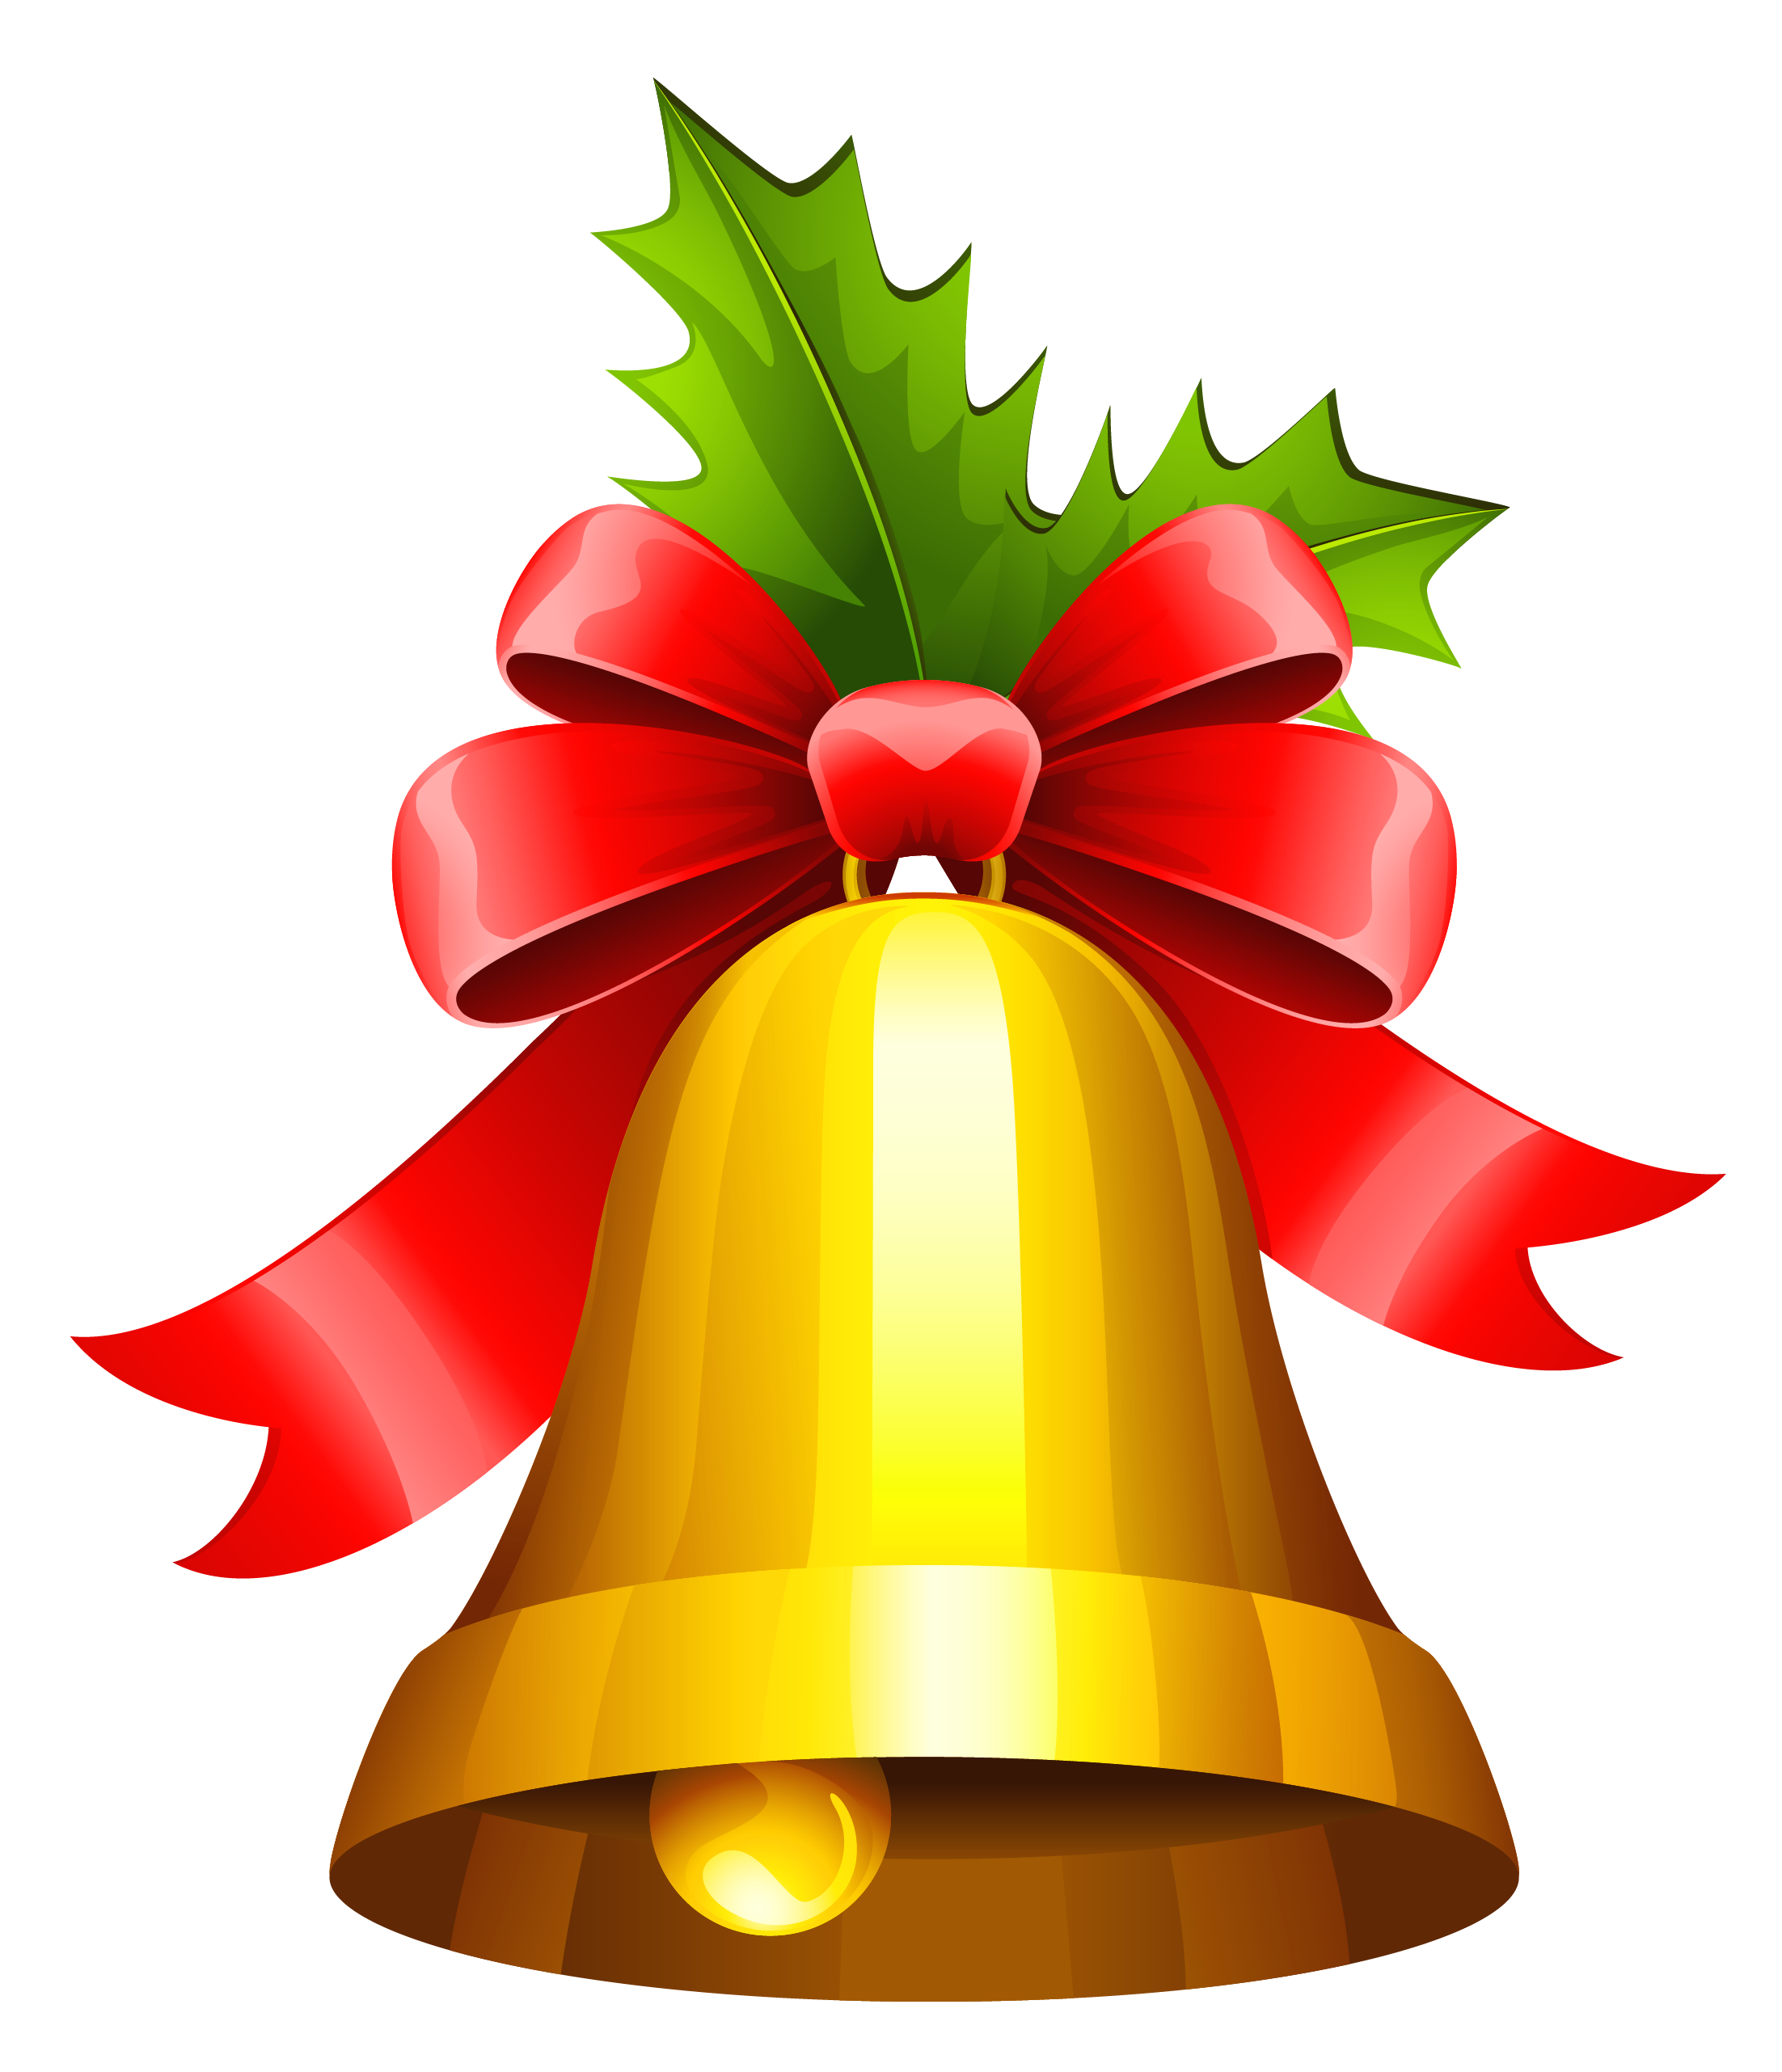 Bell PNG - 23302